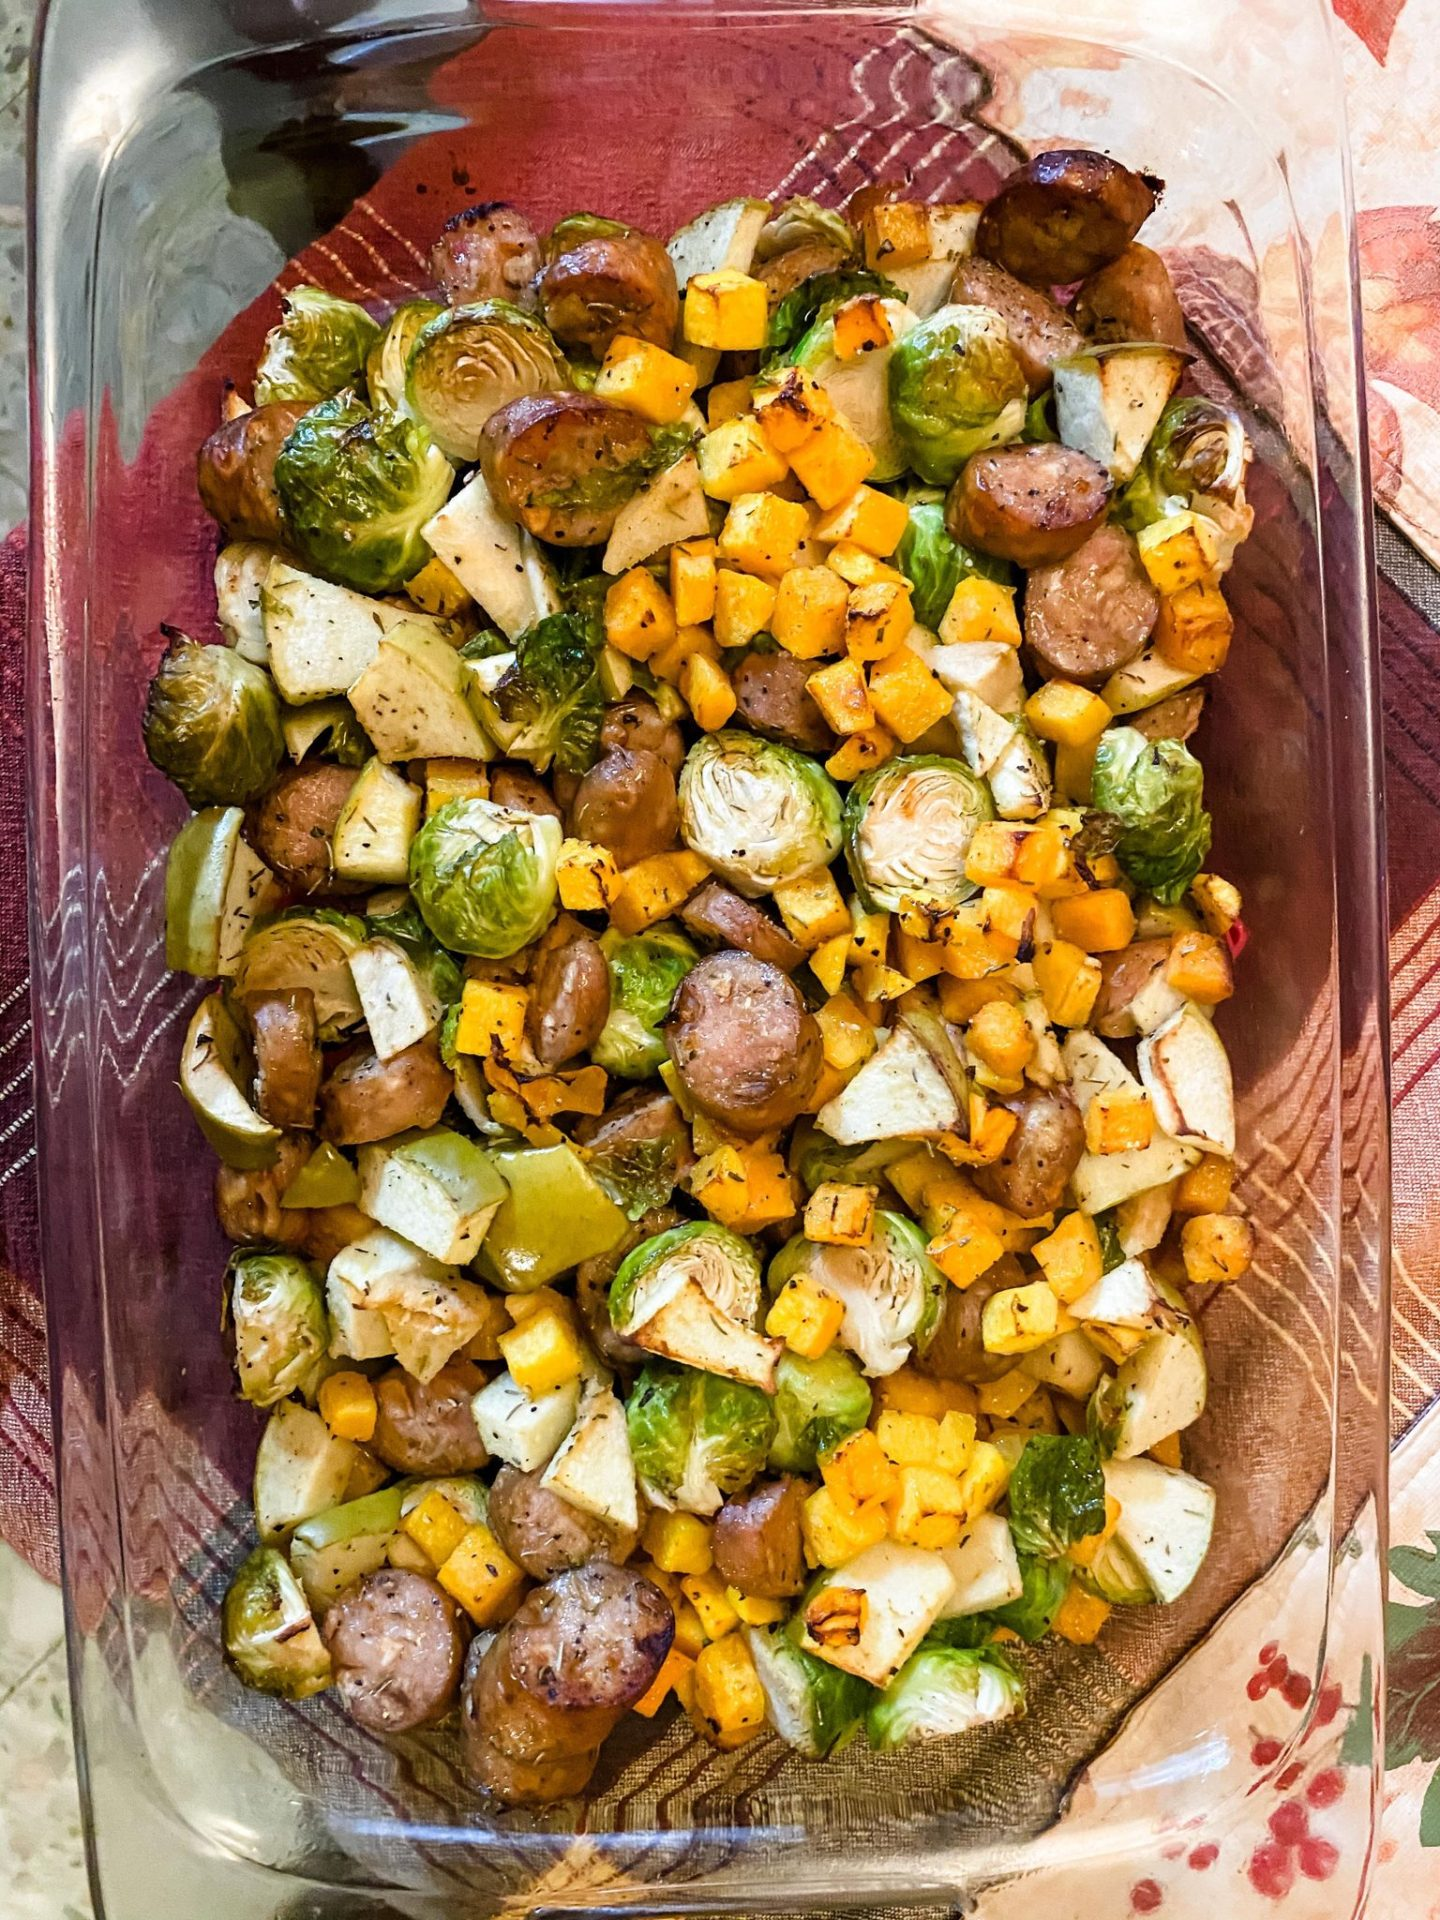 Fall Foods to Make include Sheet Pan Chicken Apple Harvest Hash. (c) MemoriesAndWords